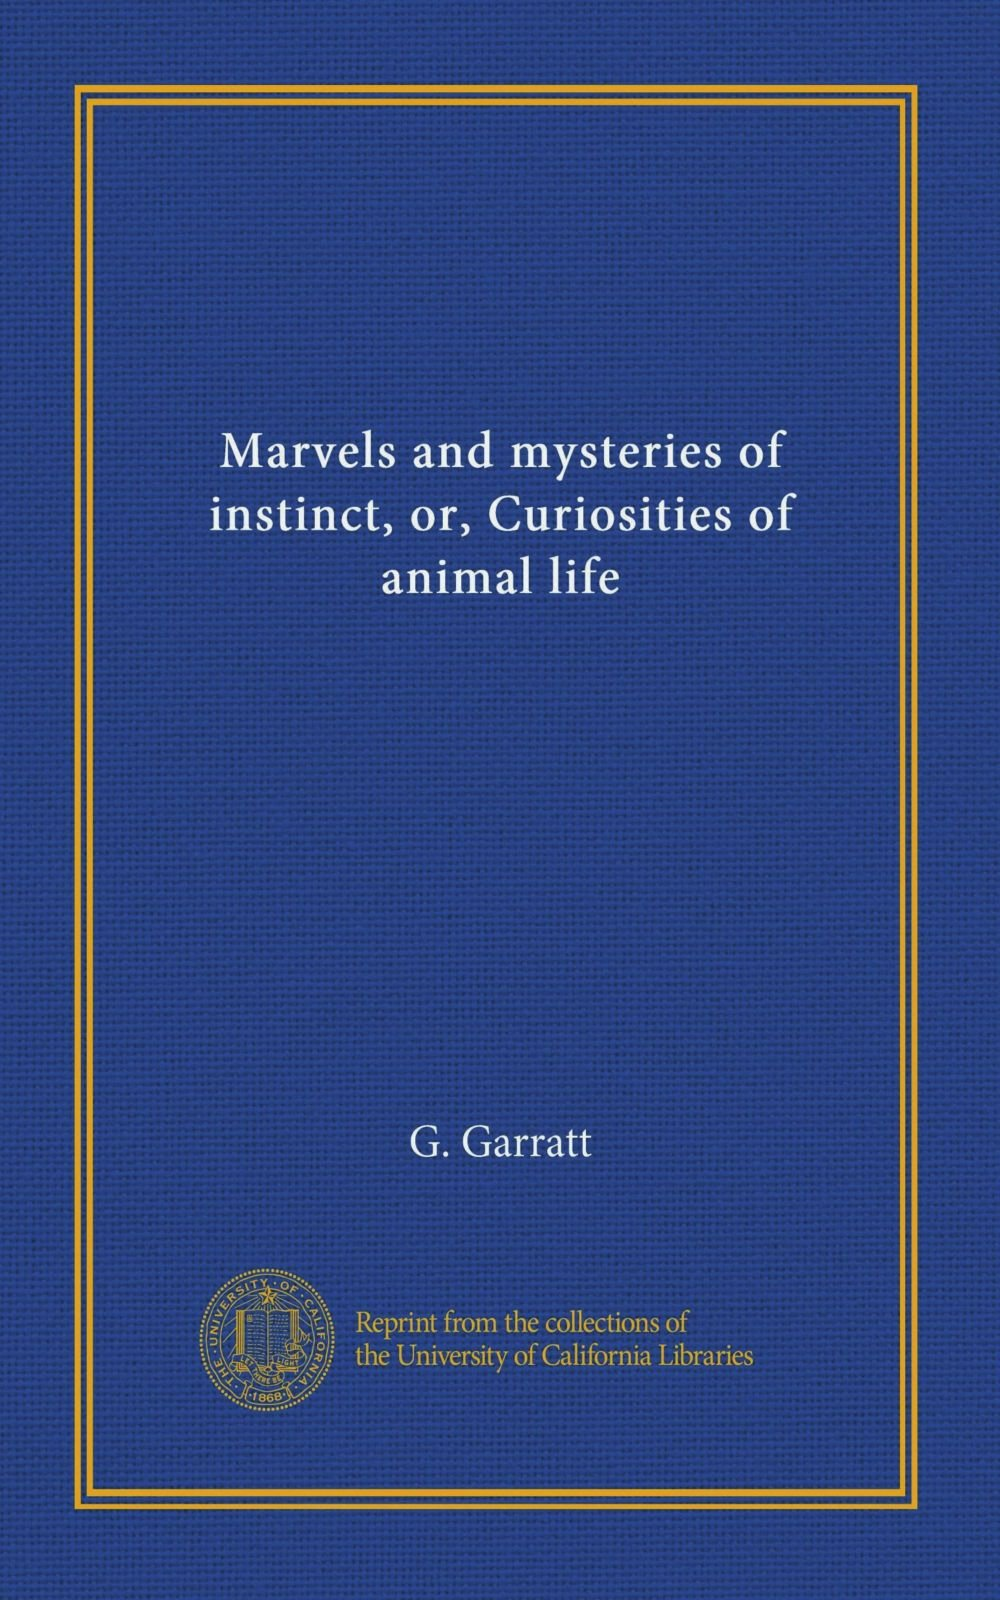 Read Online Marvels and mysteries of instinct, or, Curiosities of animal life ebook